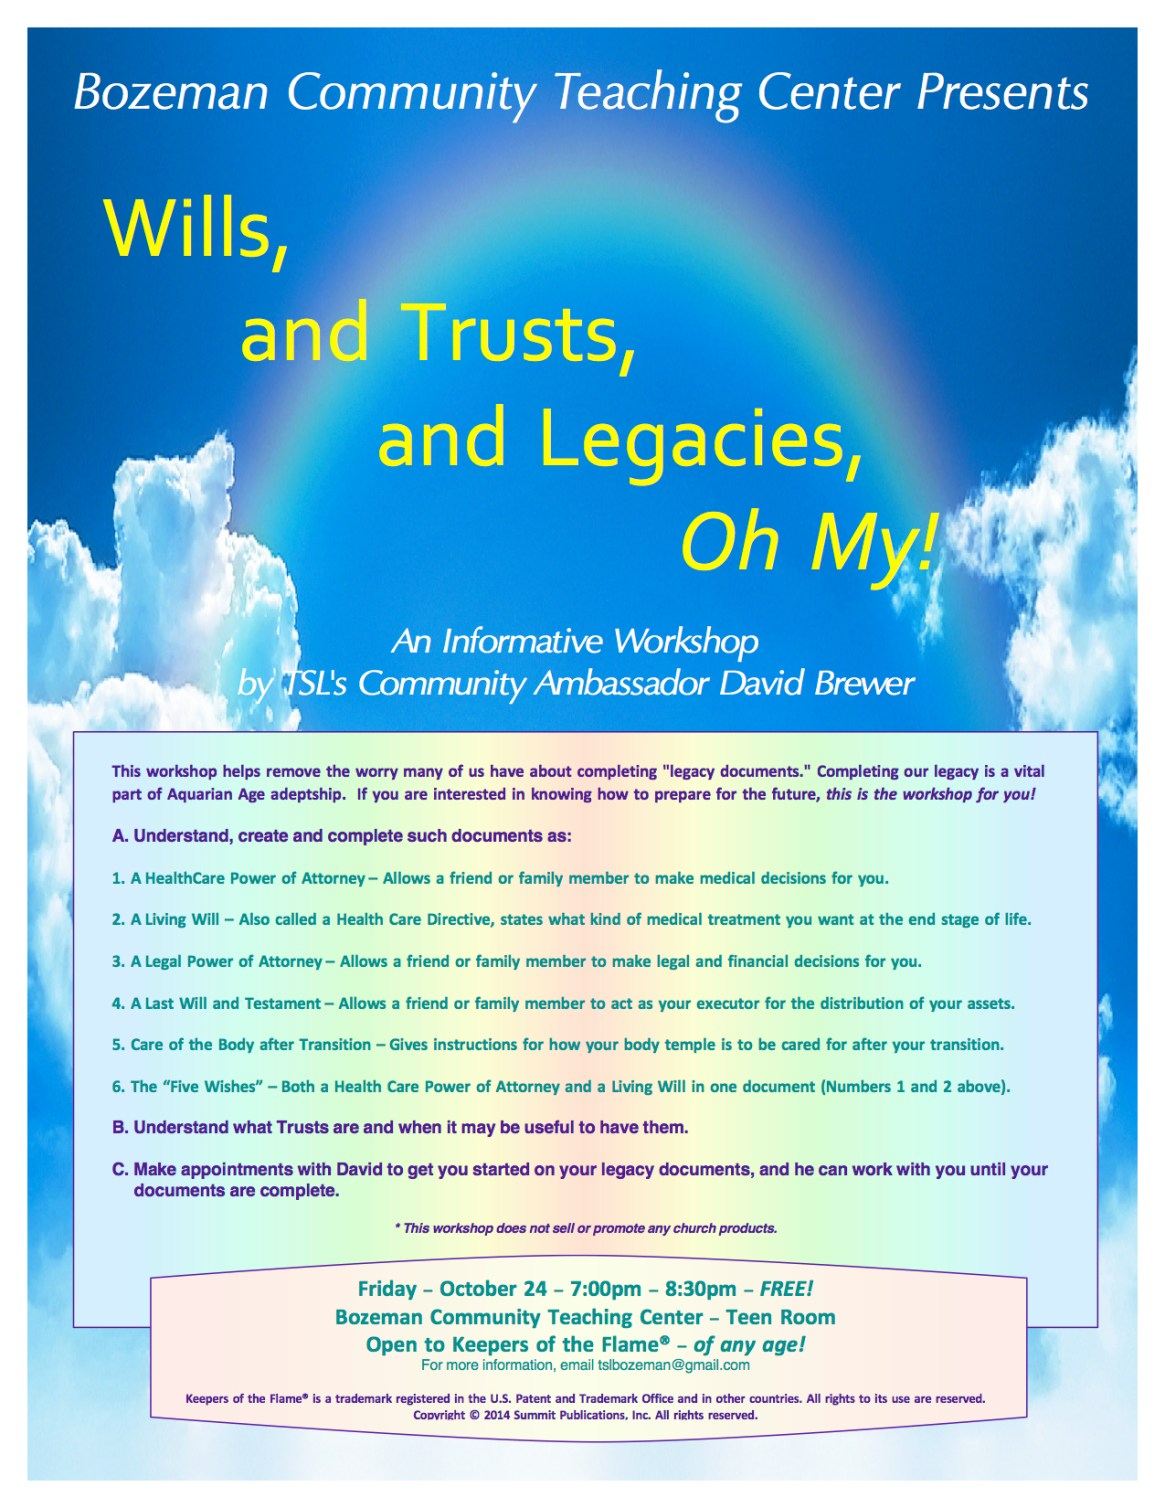 NEW Wills, and Trusts, and Legacies, Oh My!